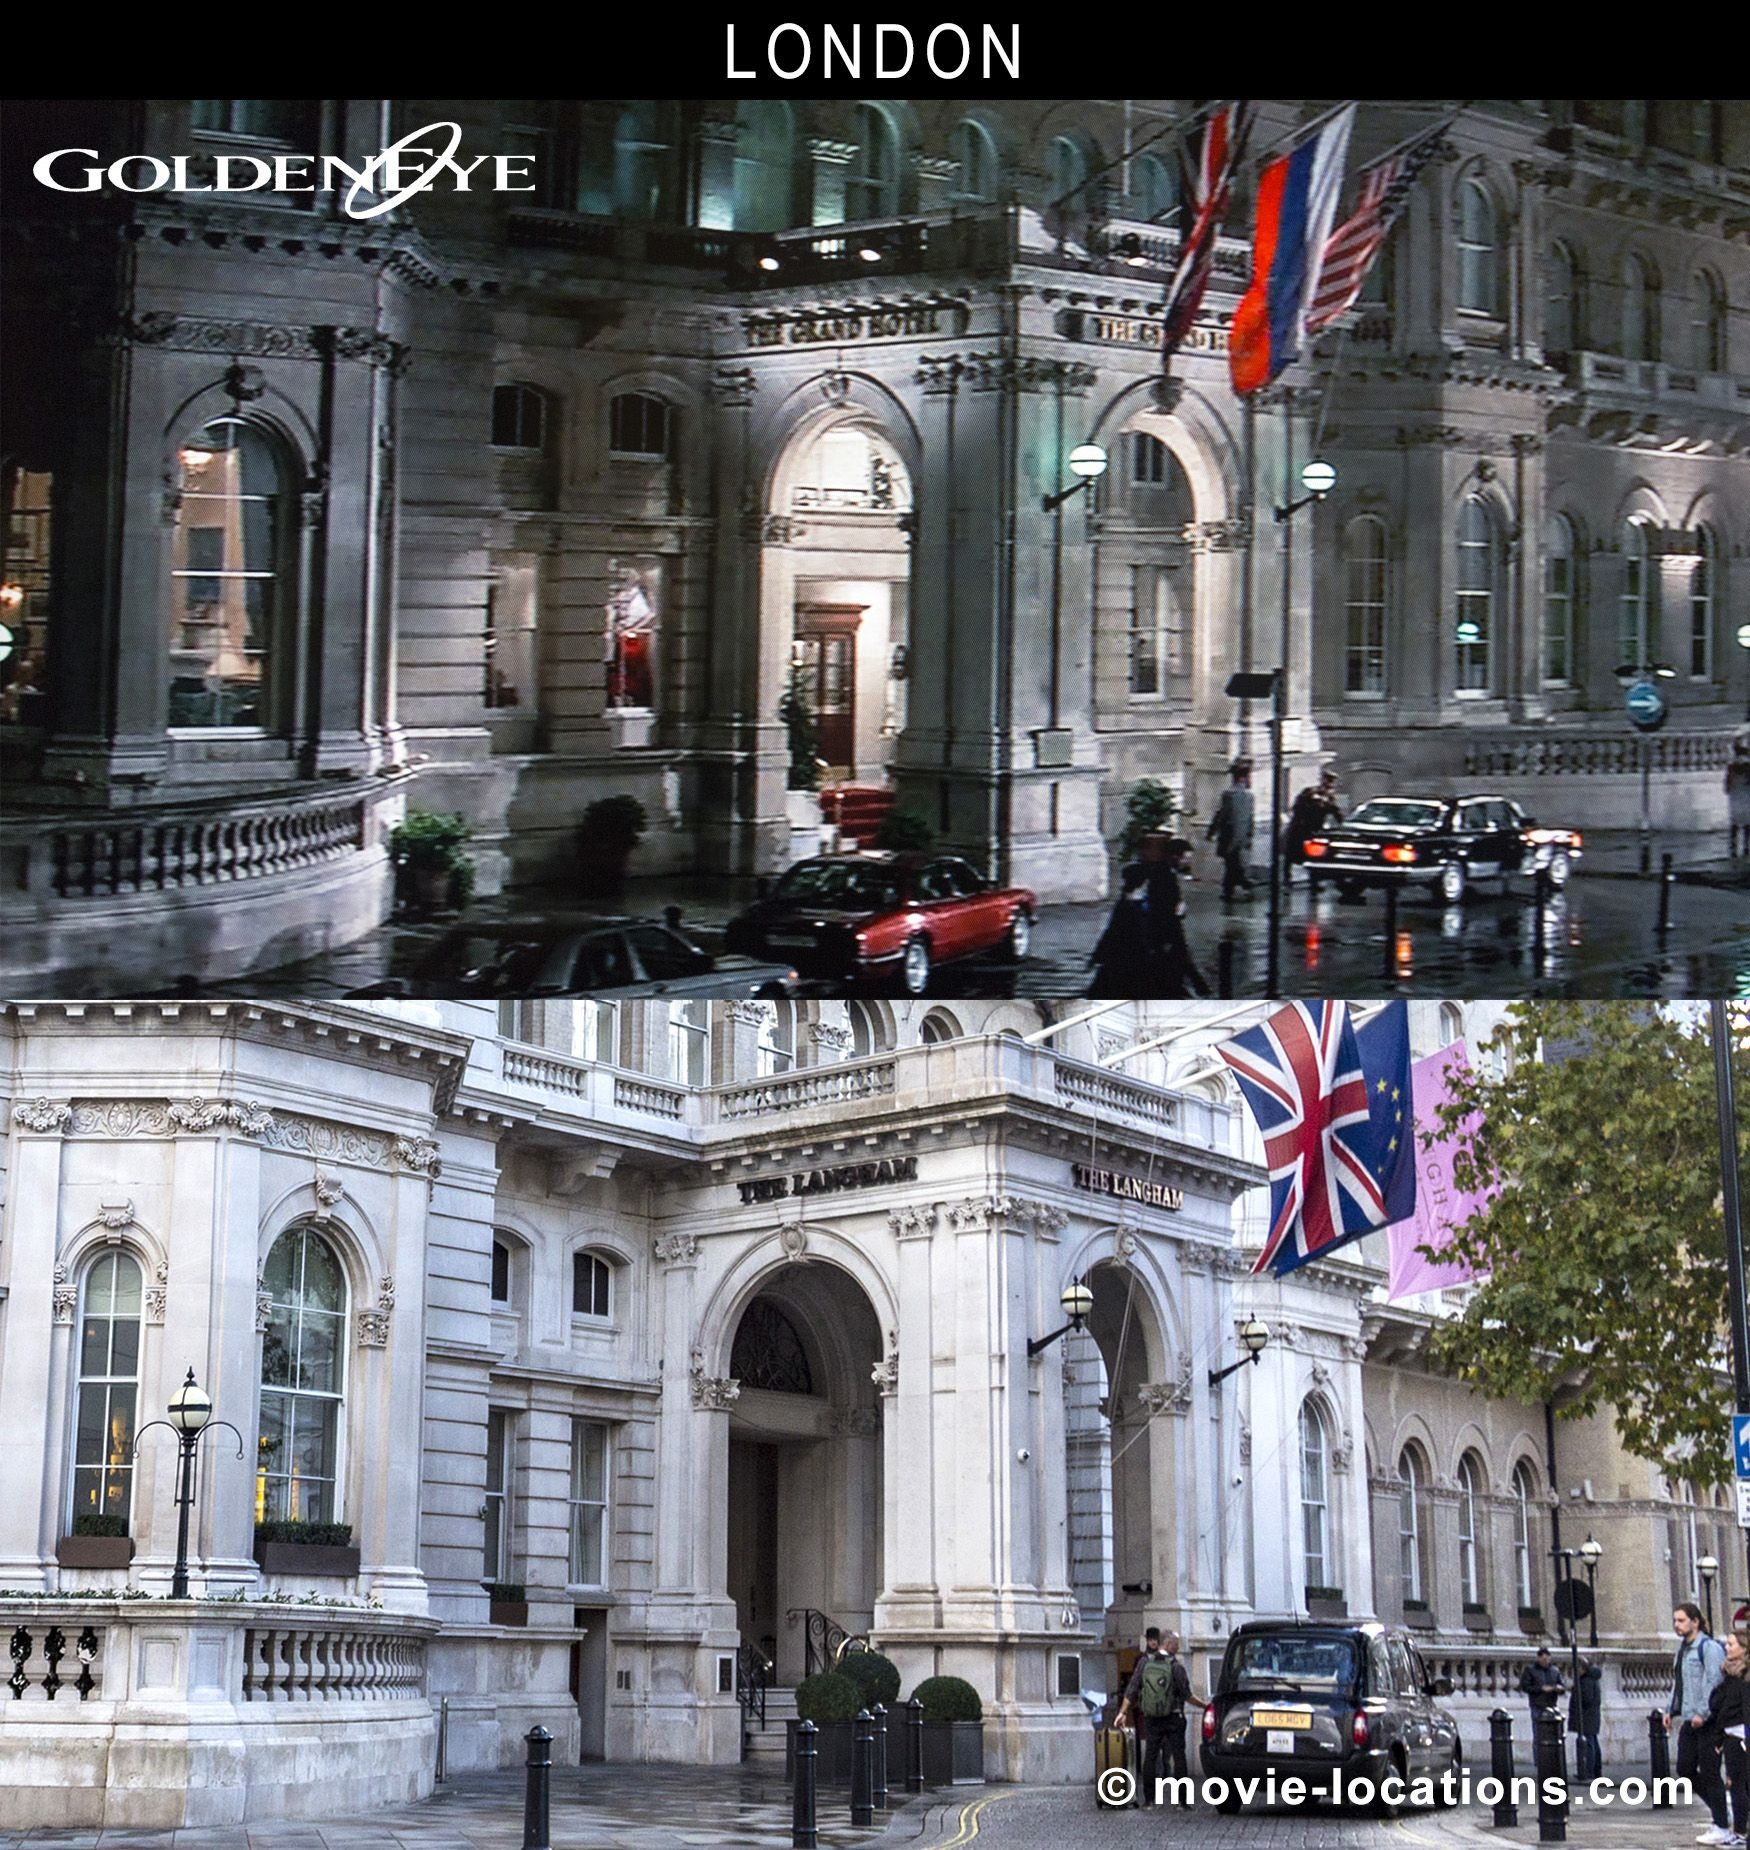 The Langham, 1C Portland Place, Marylebone, London W1 ● Despite those international flags, the 'Grand Hotel Europe' in 'St Petersburg' is the #Langham #London on Portland Place W1, at the top of #RegentStreet. If the camera were to turn 180°, you be looking at the imposing frontage of Broadcasting House, home of the BBC. 🎬 #Goldeneye #JamesBond #FilmLocation